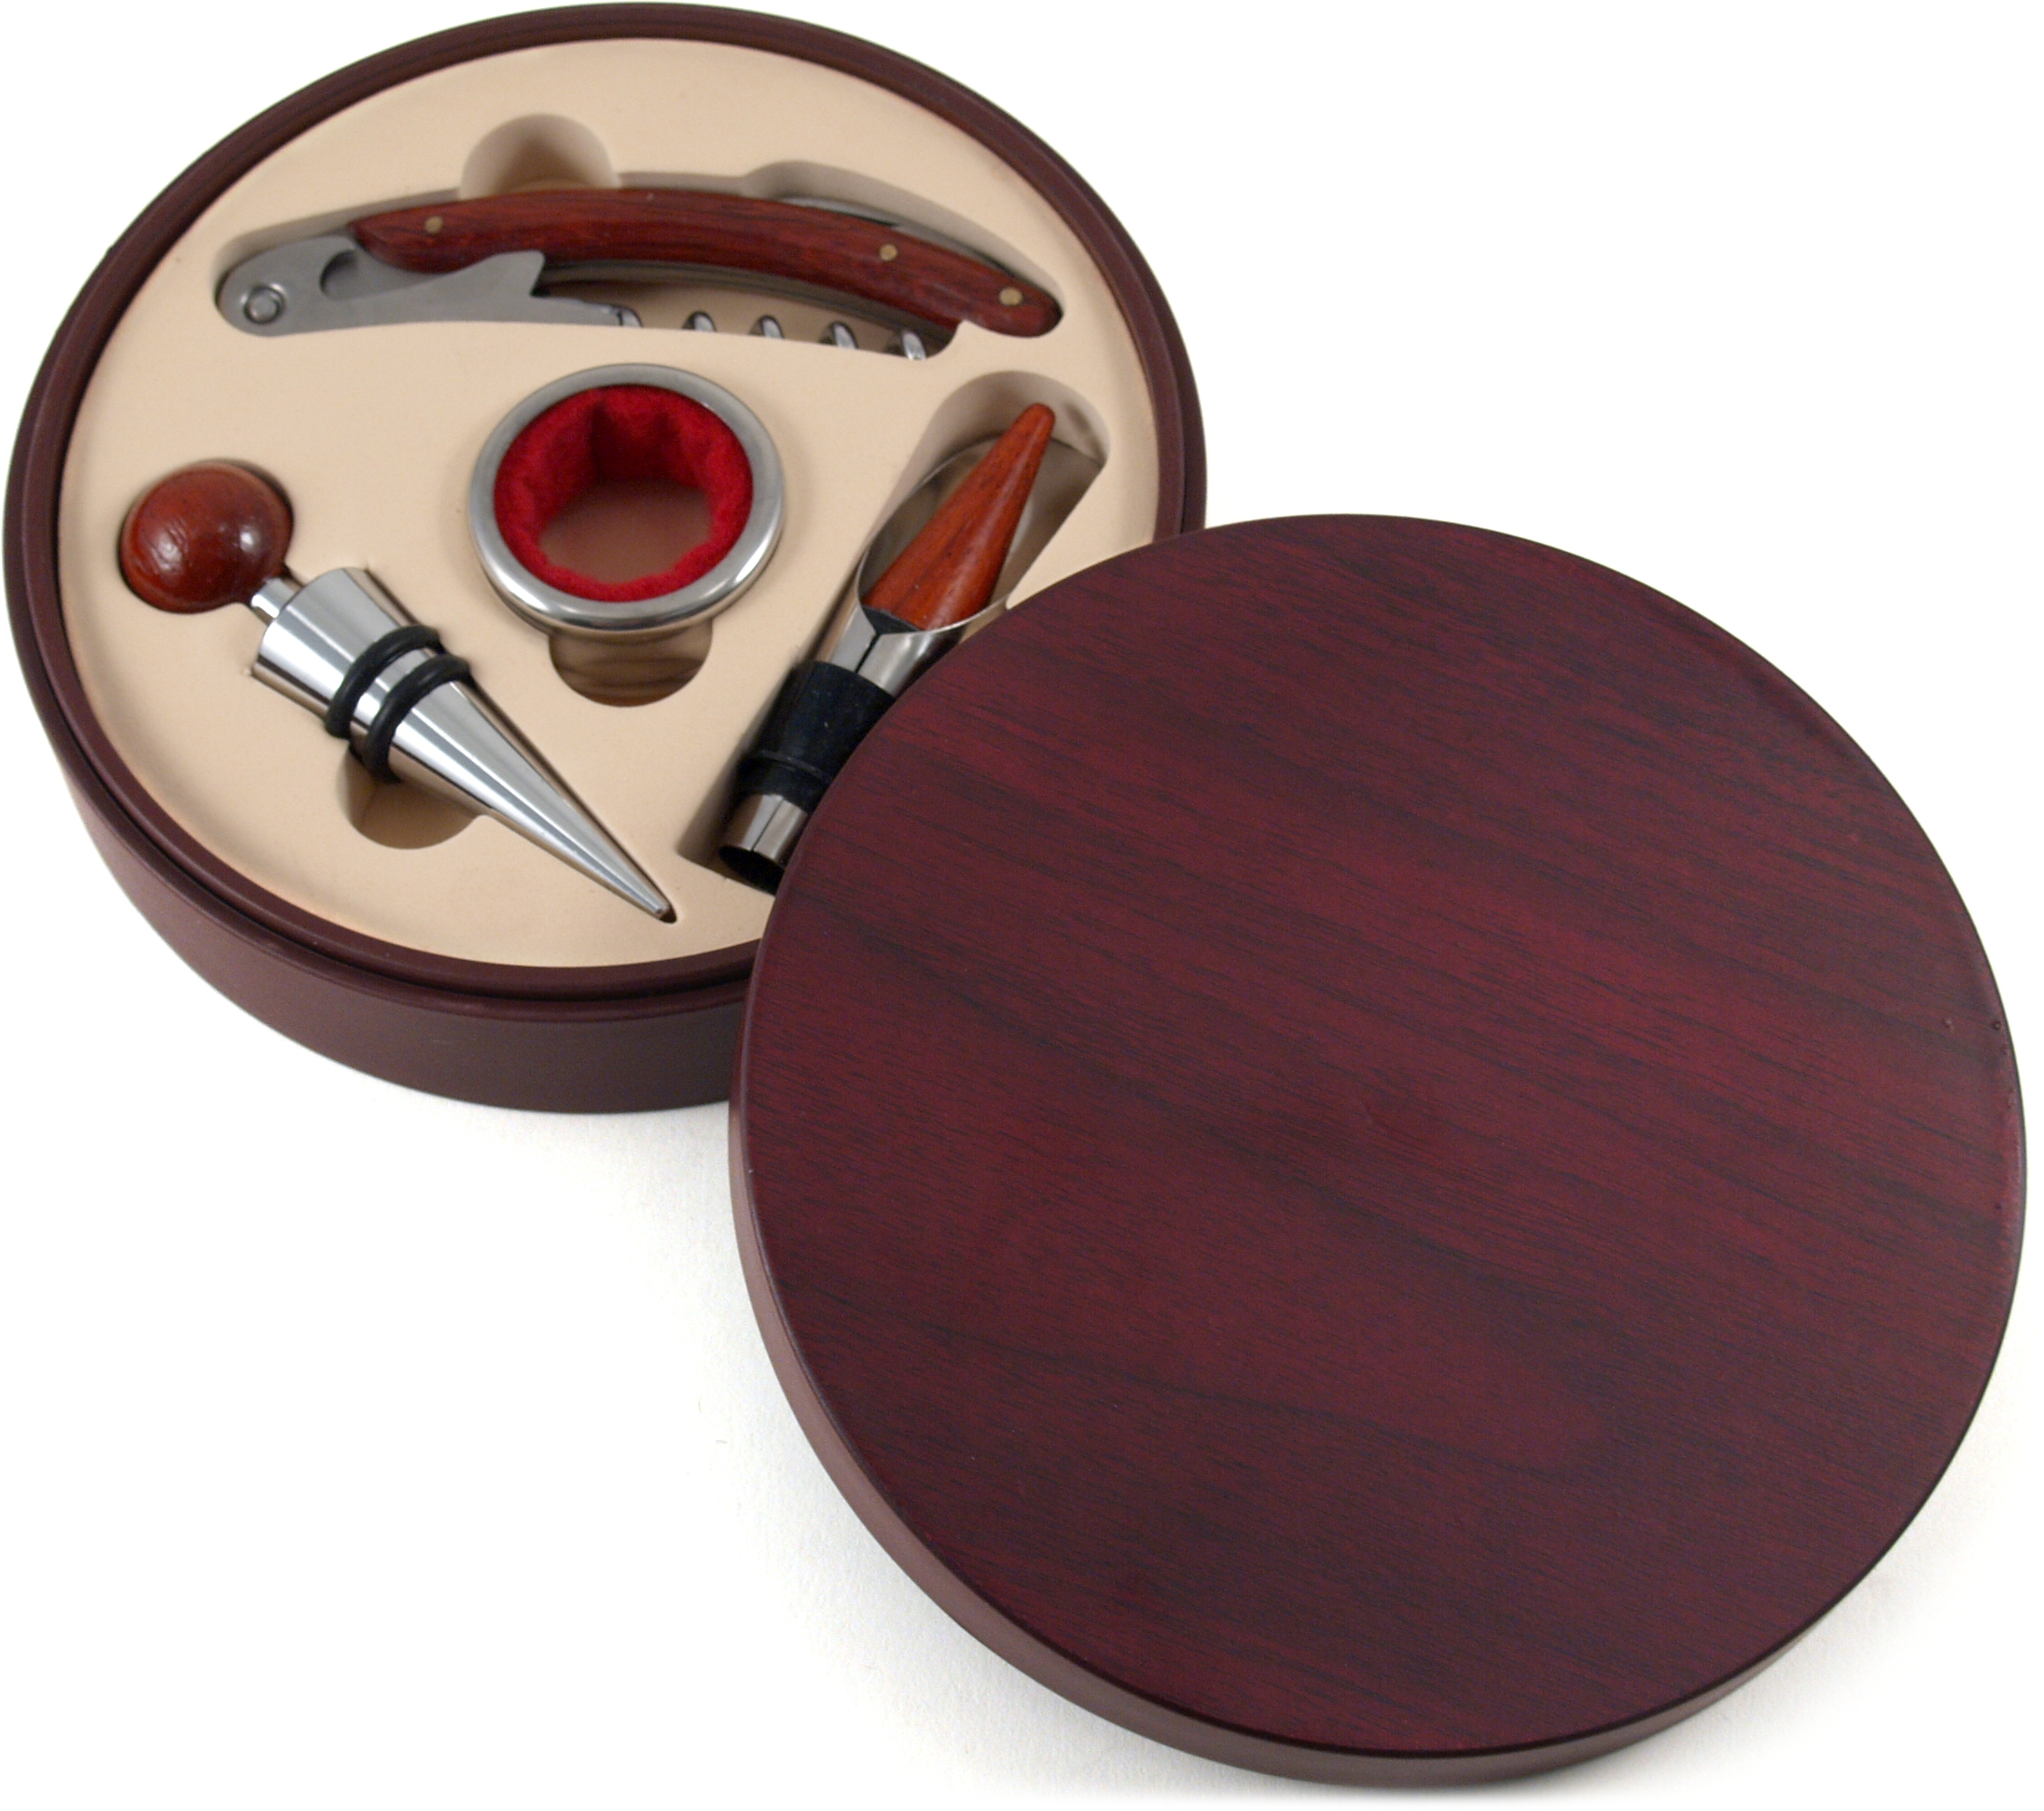 Berkeley Designs 4 Piece Wine Accessories Round Hardwood Boxed Set